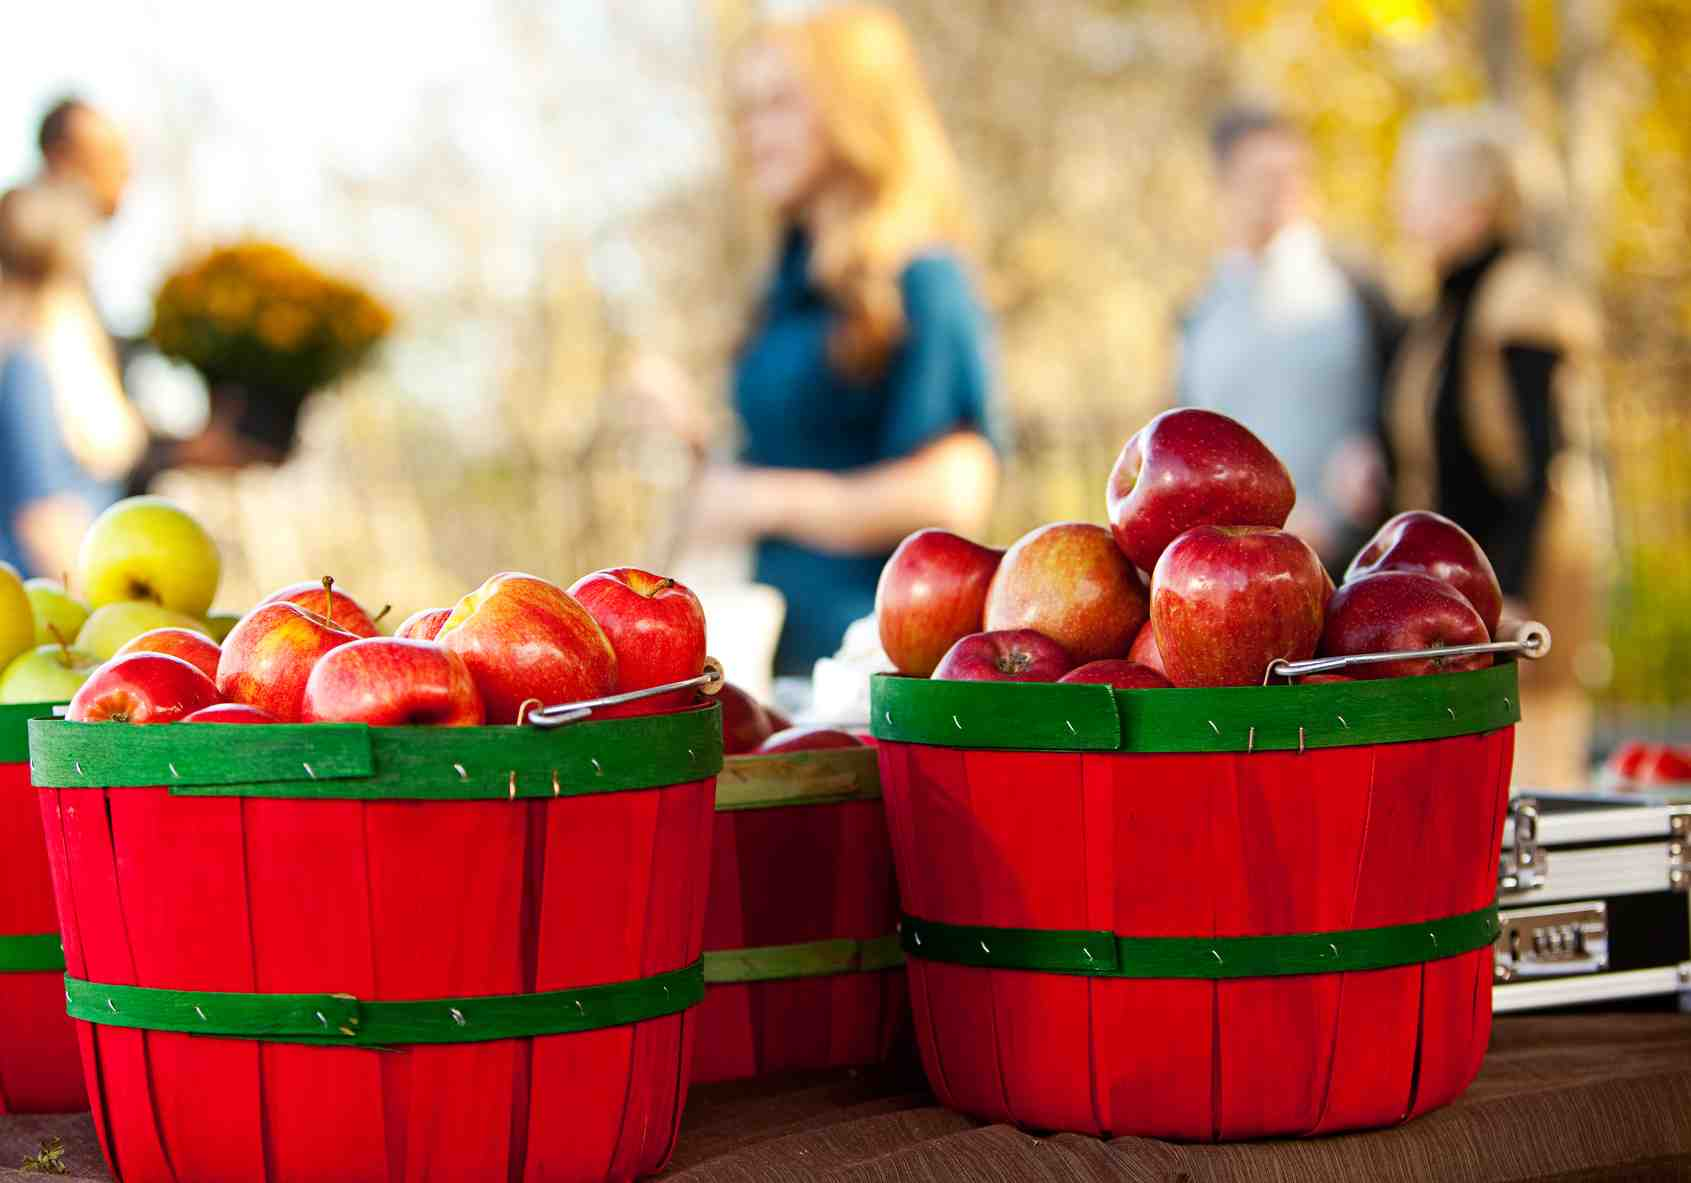 Farmer's Market: Buckets of Apples at Market